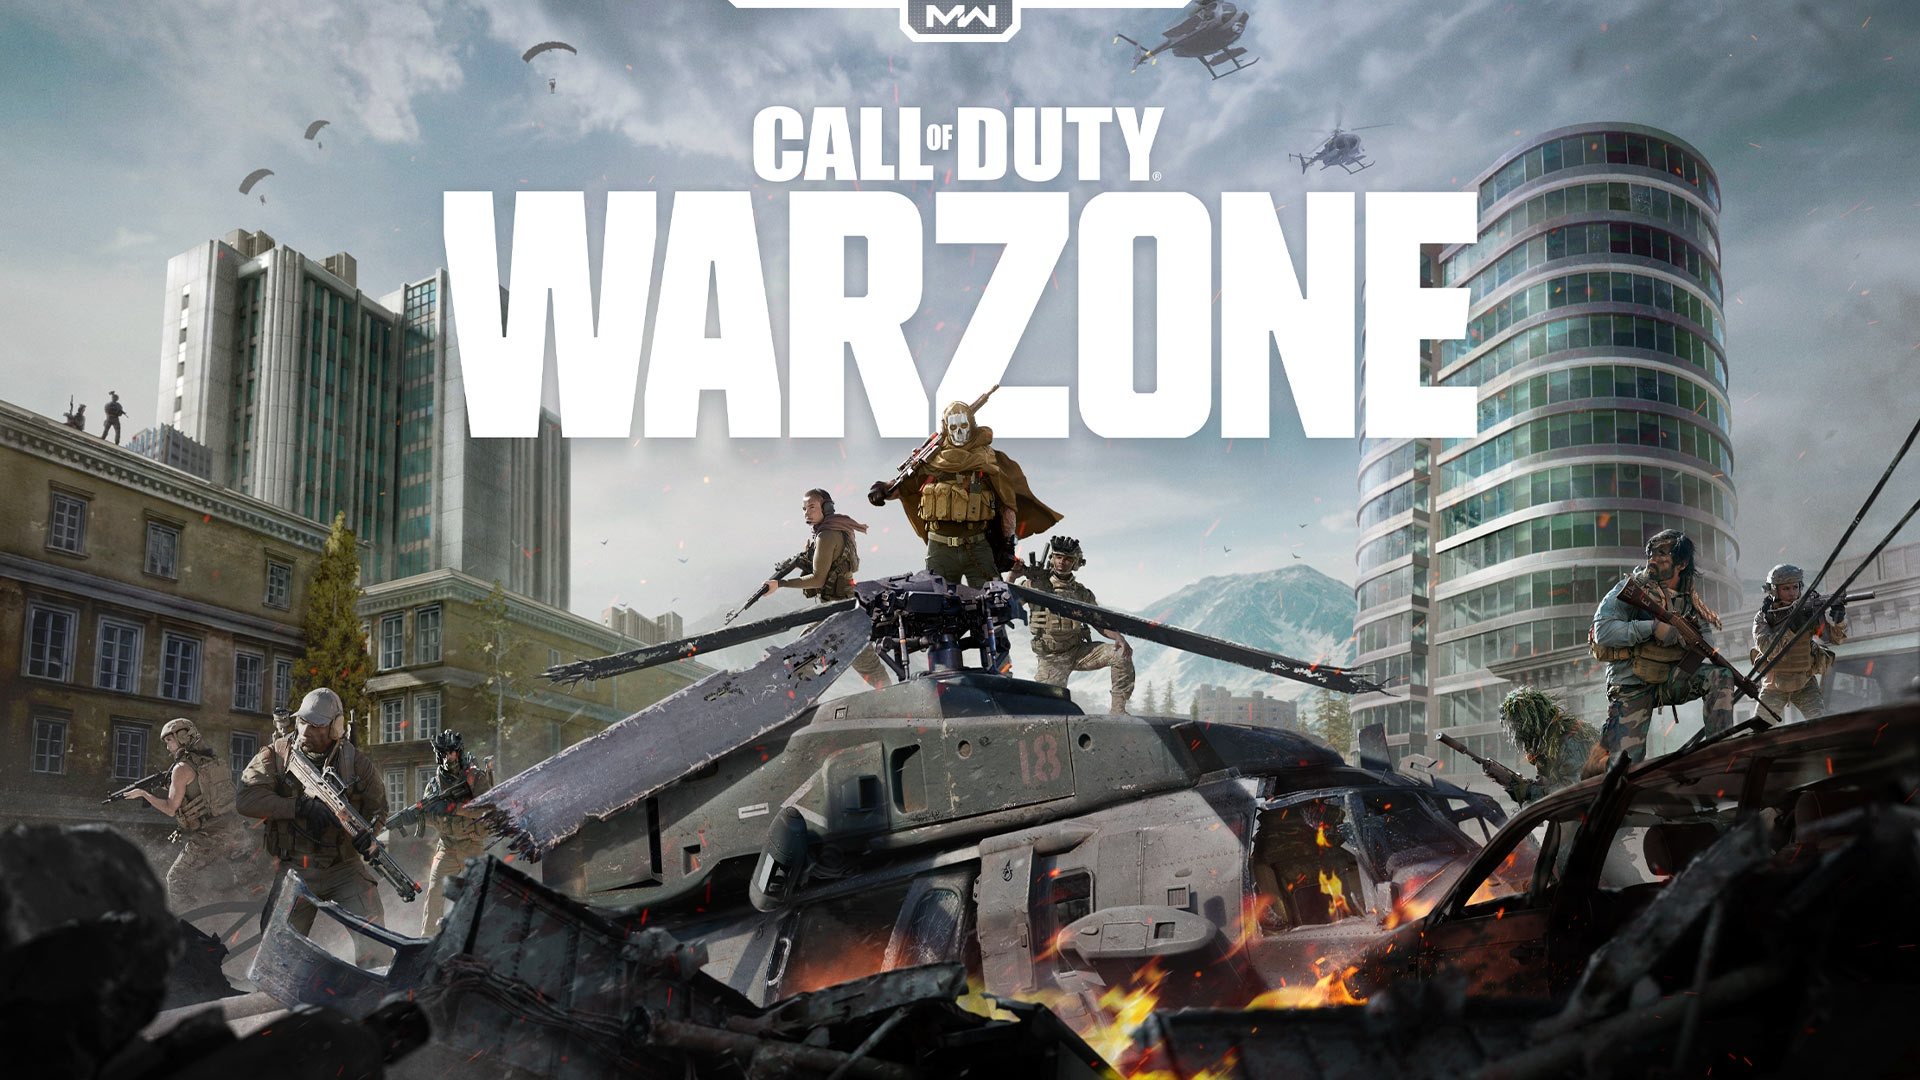 Call of Duty Warzone W A